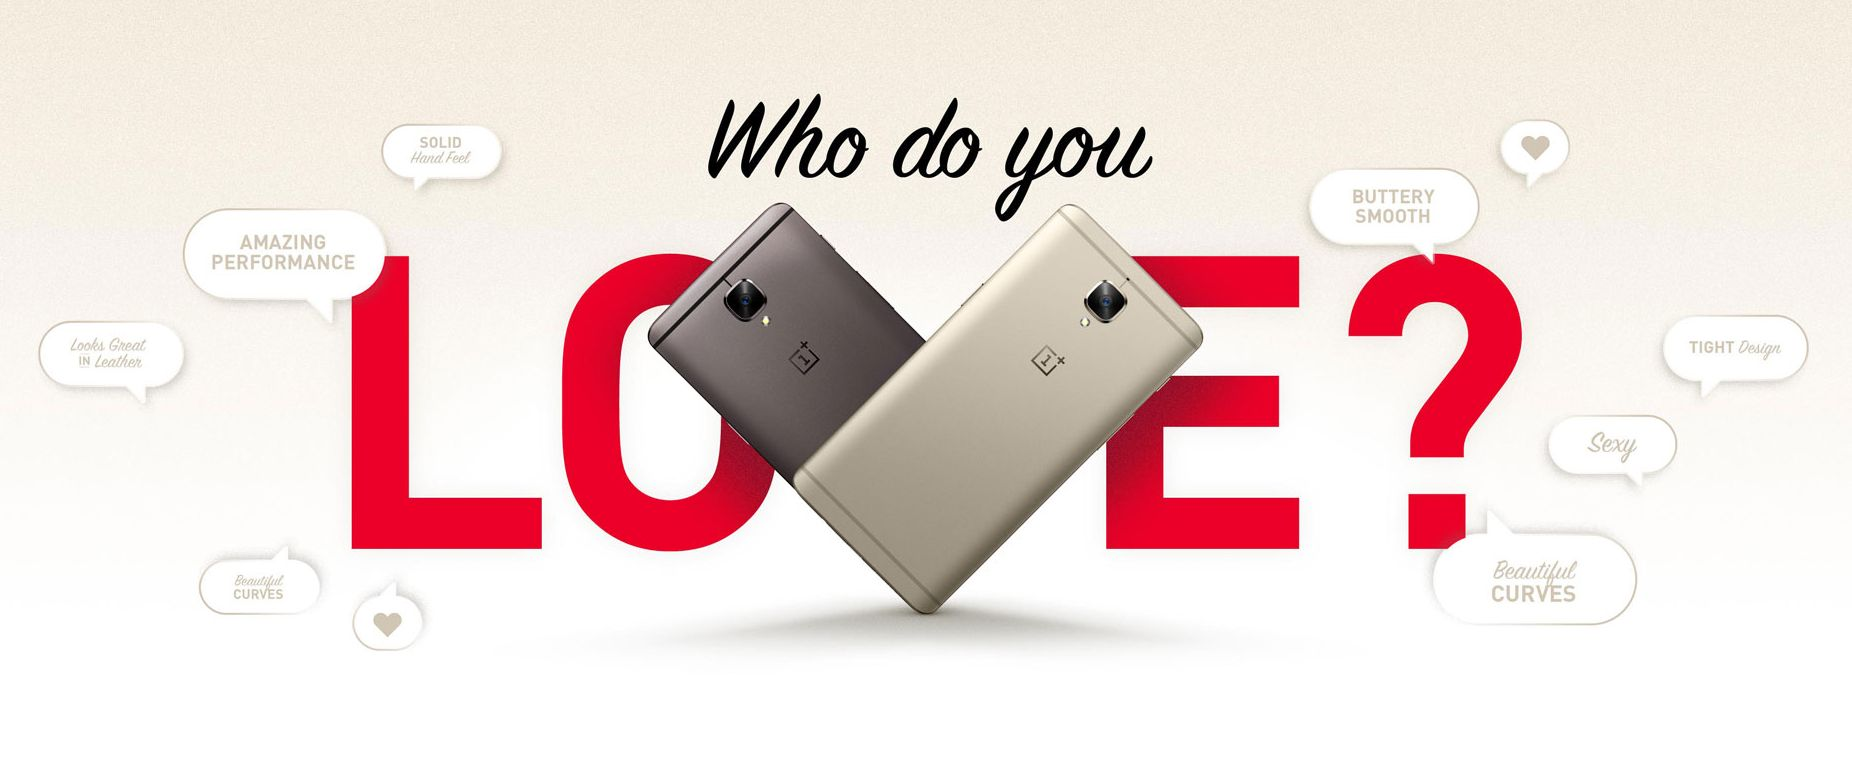 Oneplus 3t Gets Kinky Valentine S Day Ad And Lickoflove Contest